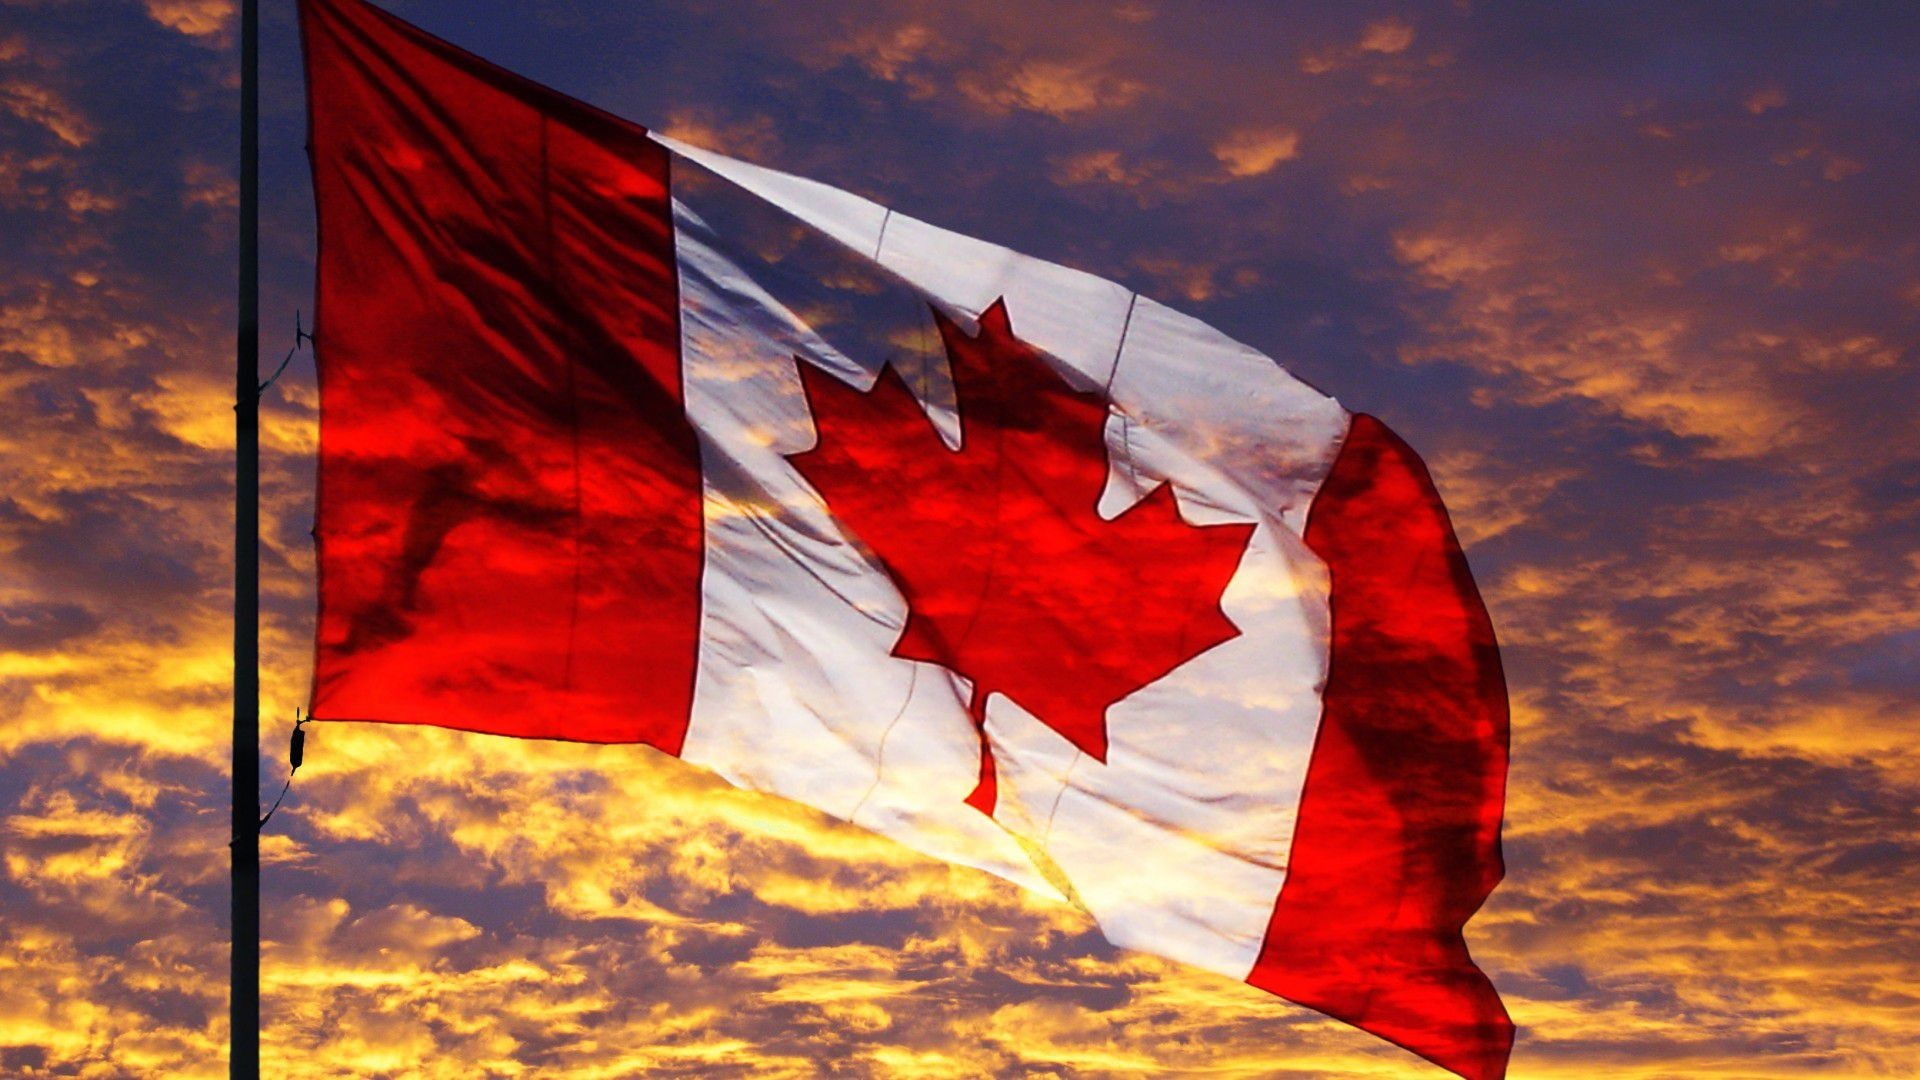 waving canadian flag images